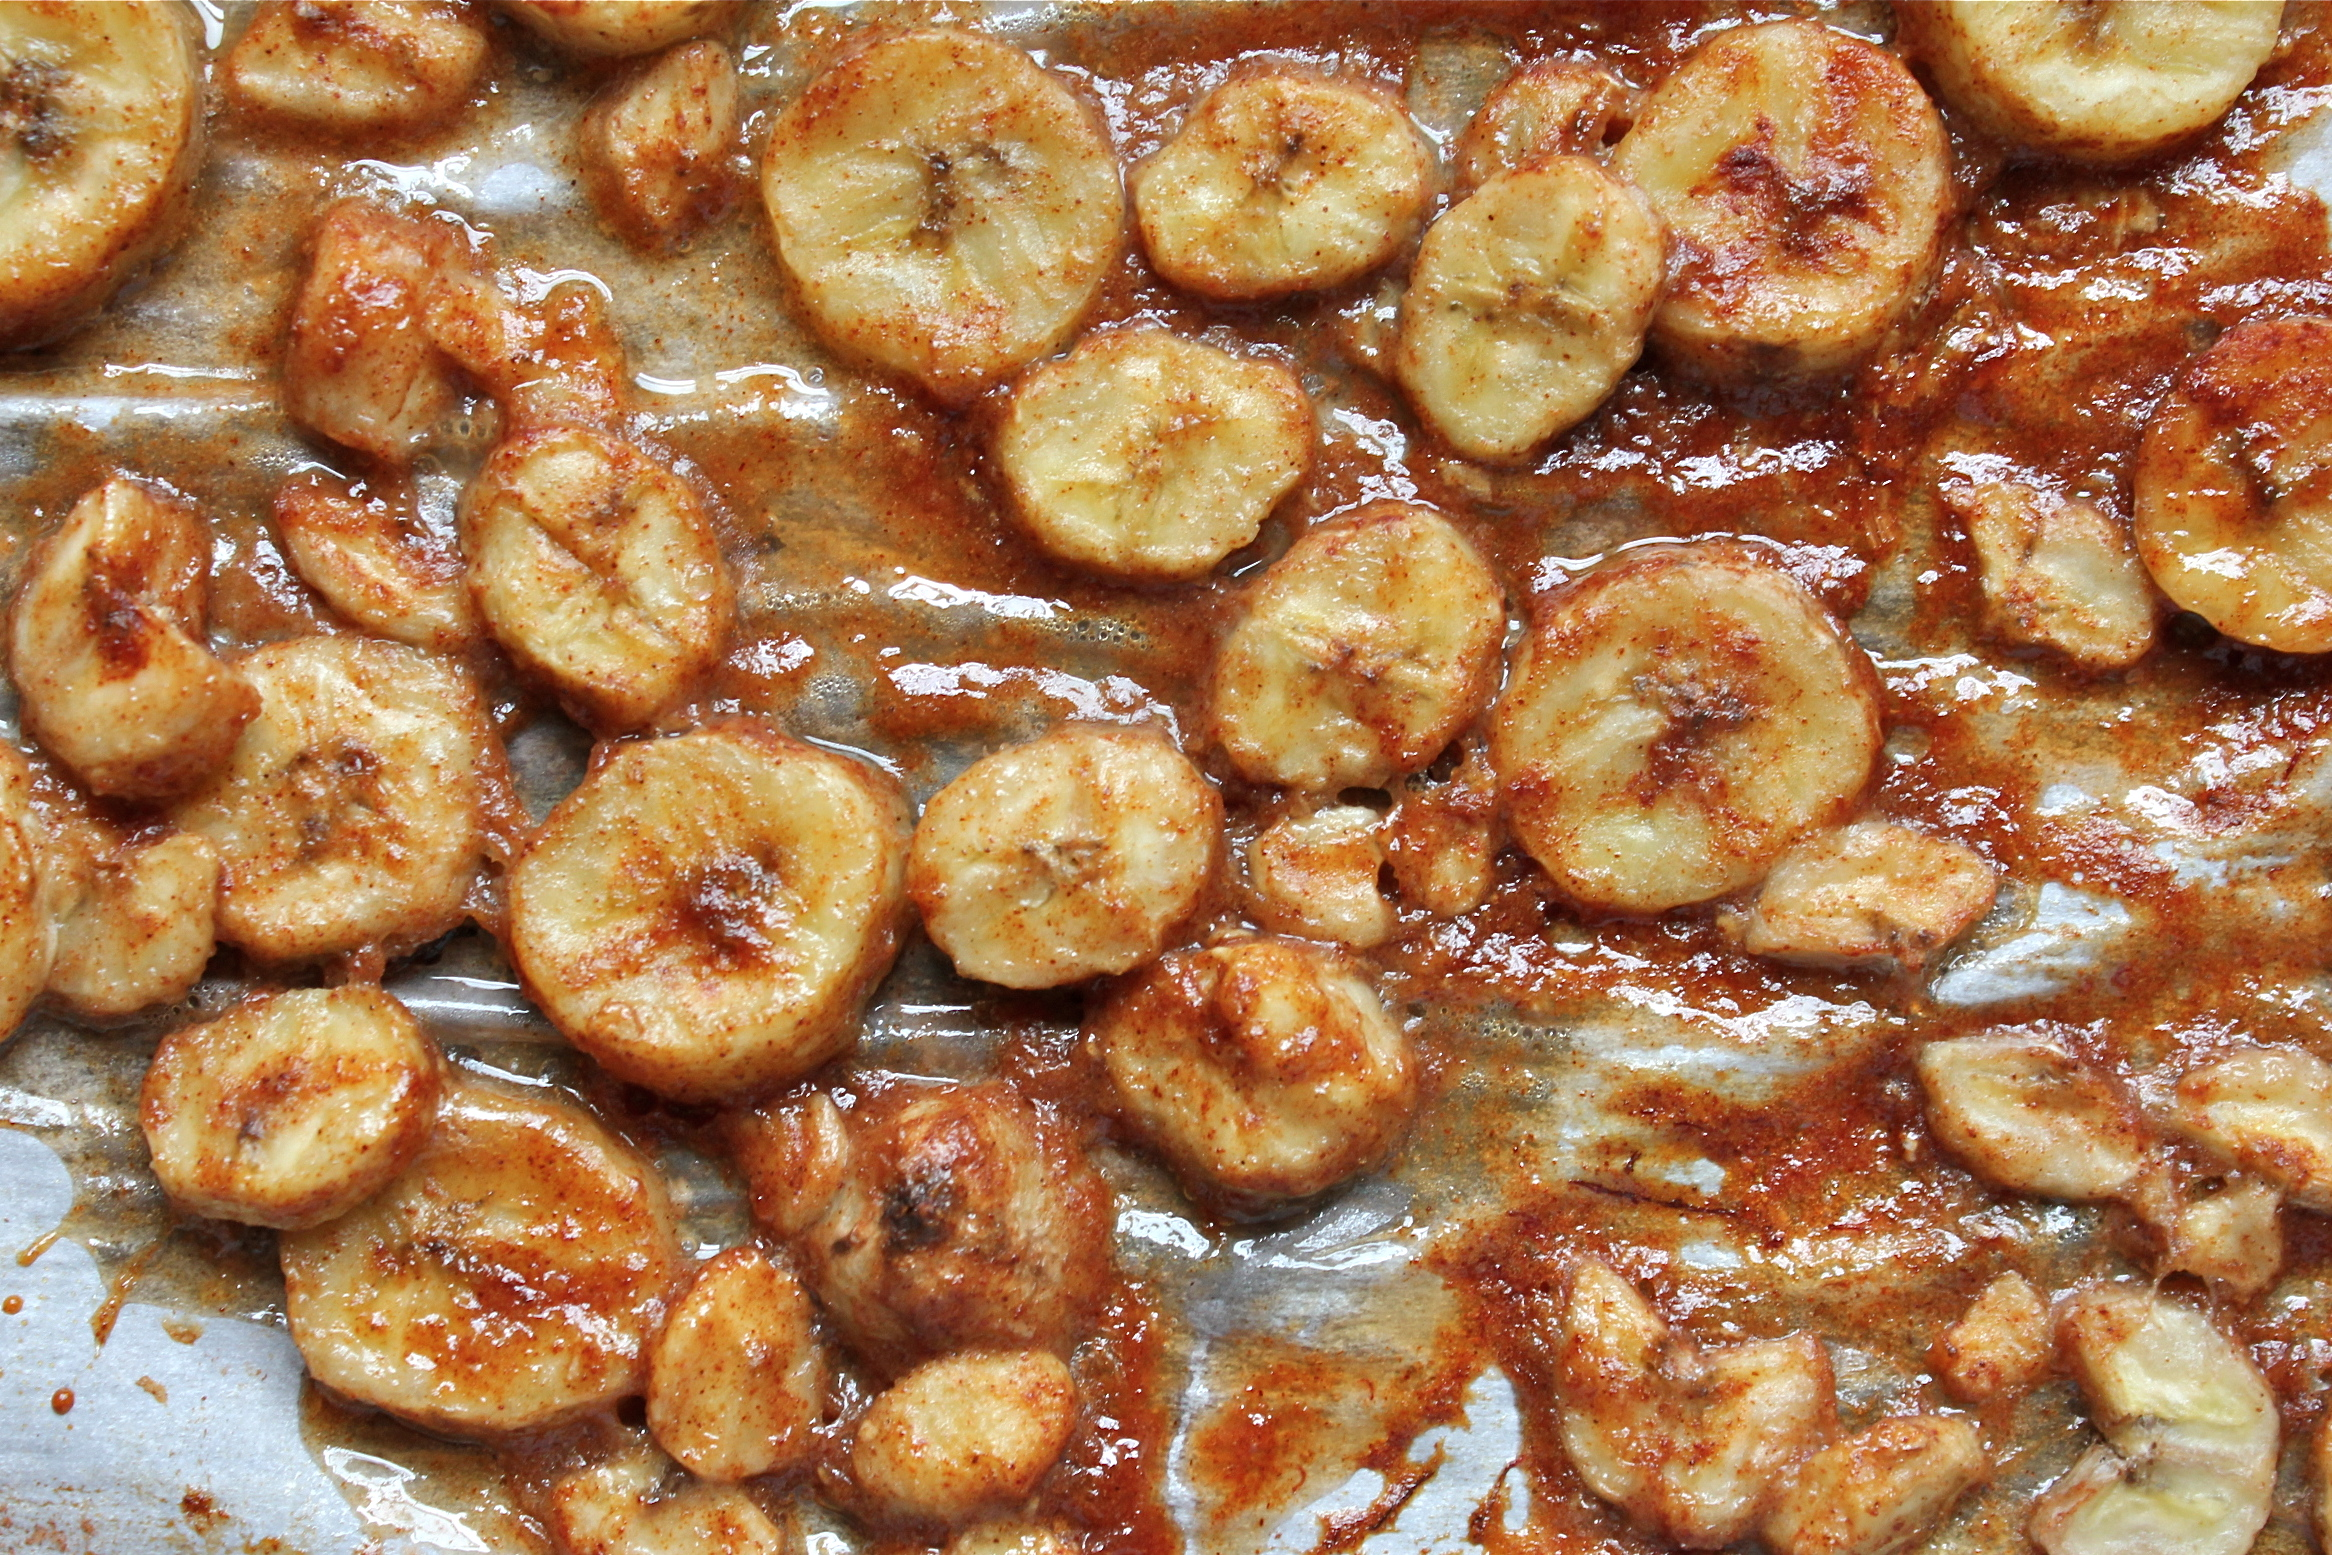 caramelized-bananas-recipe